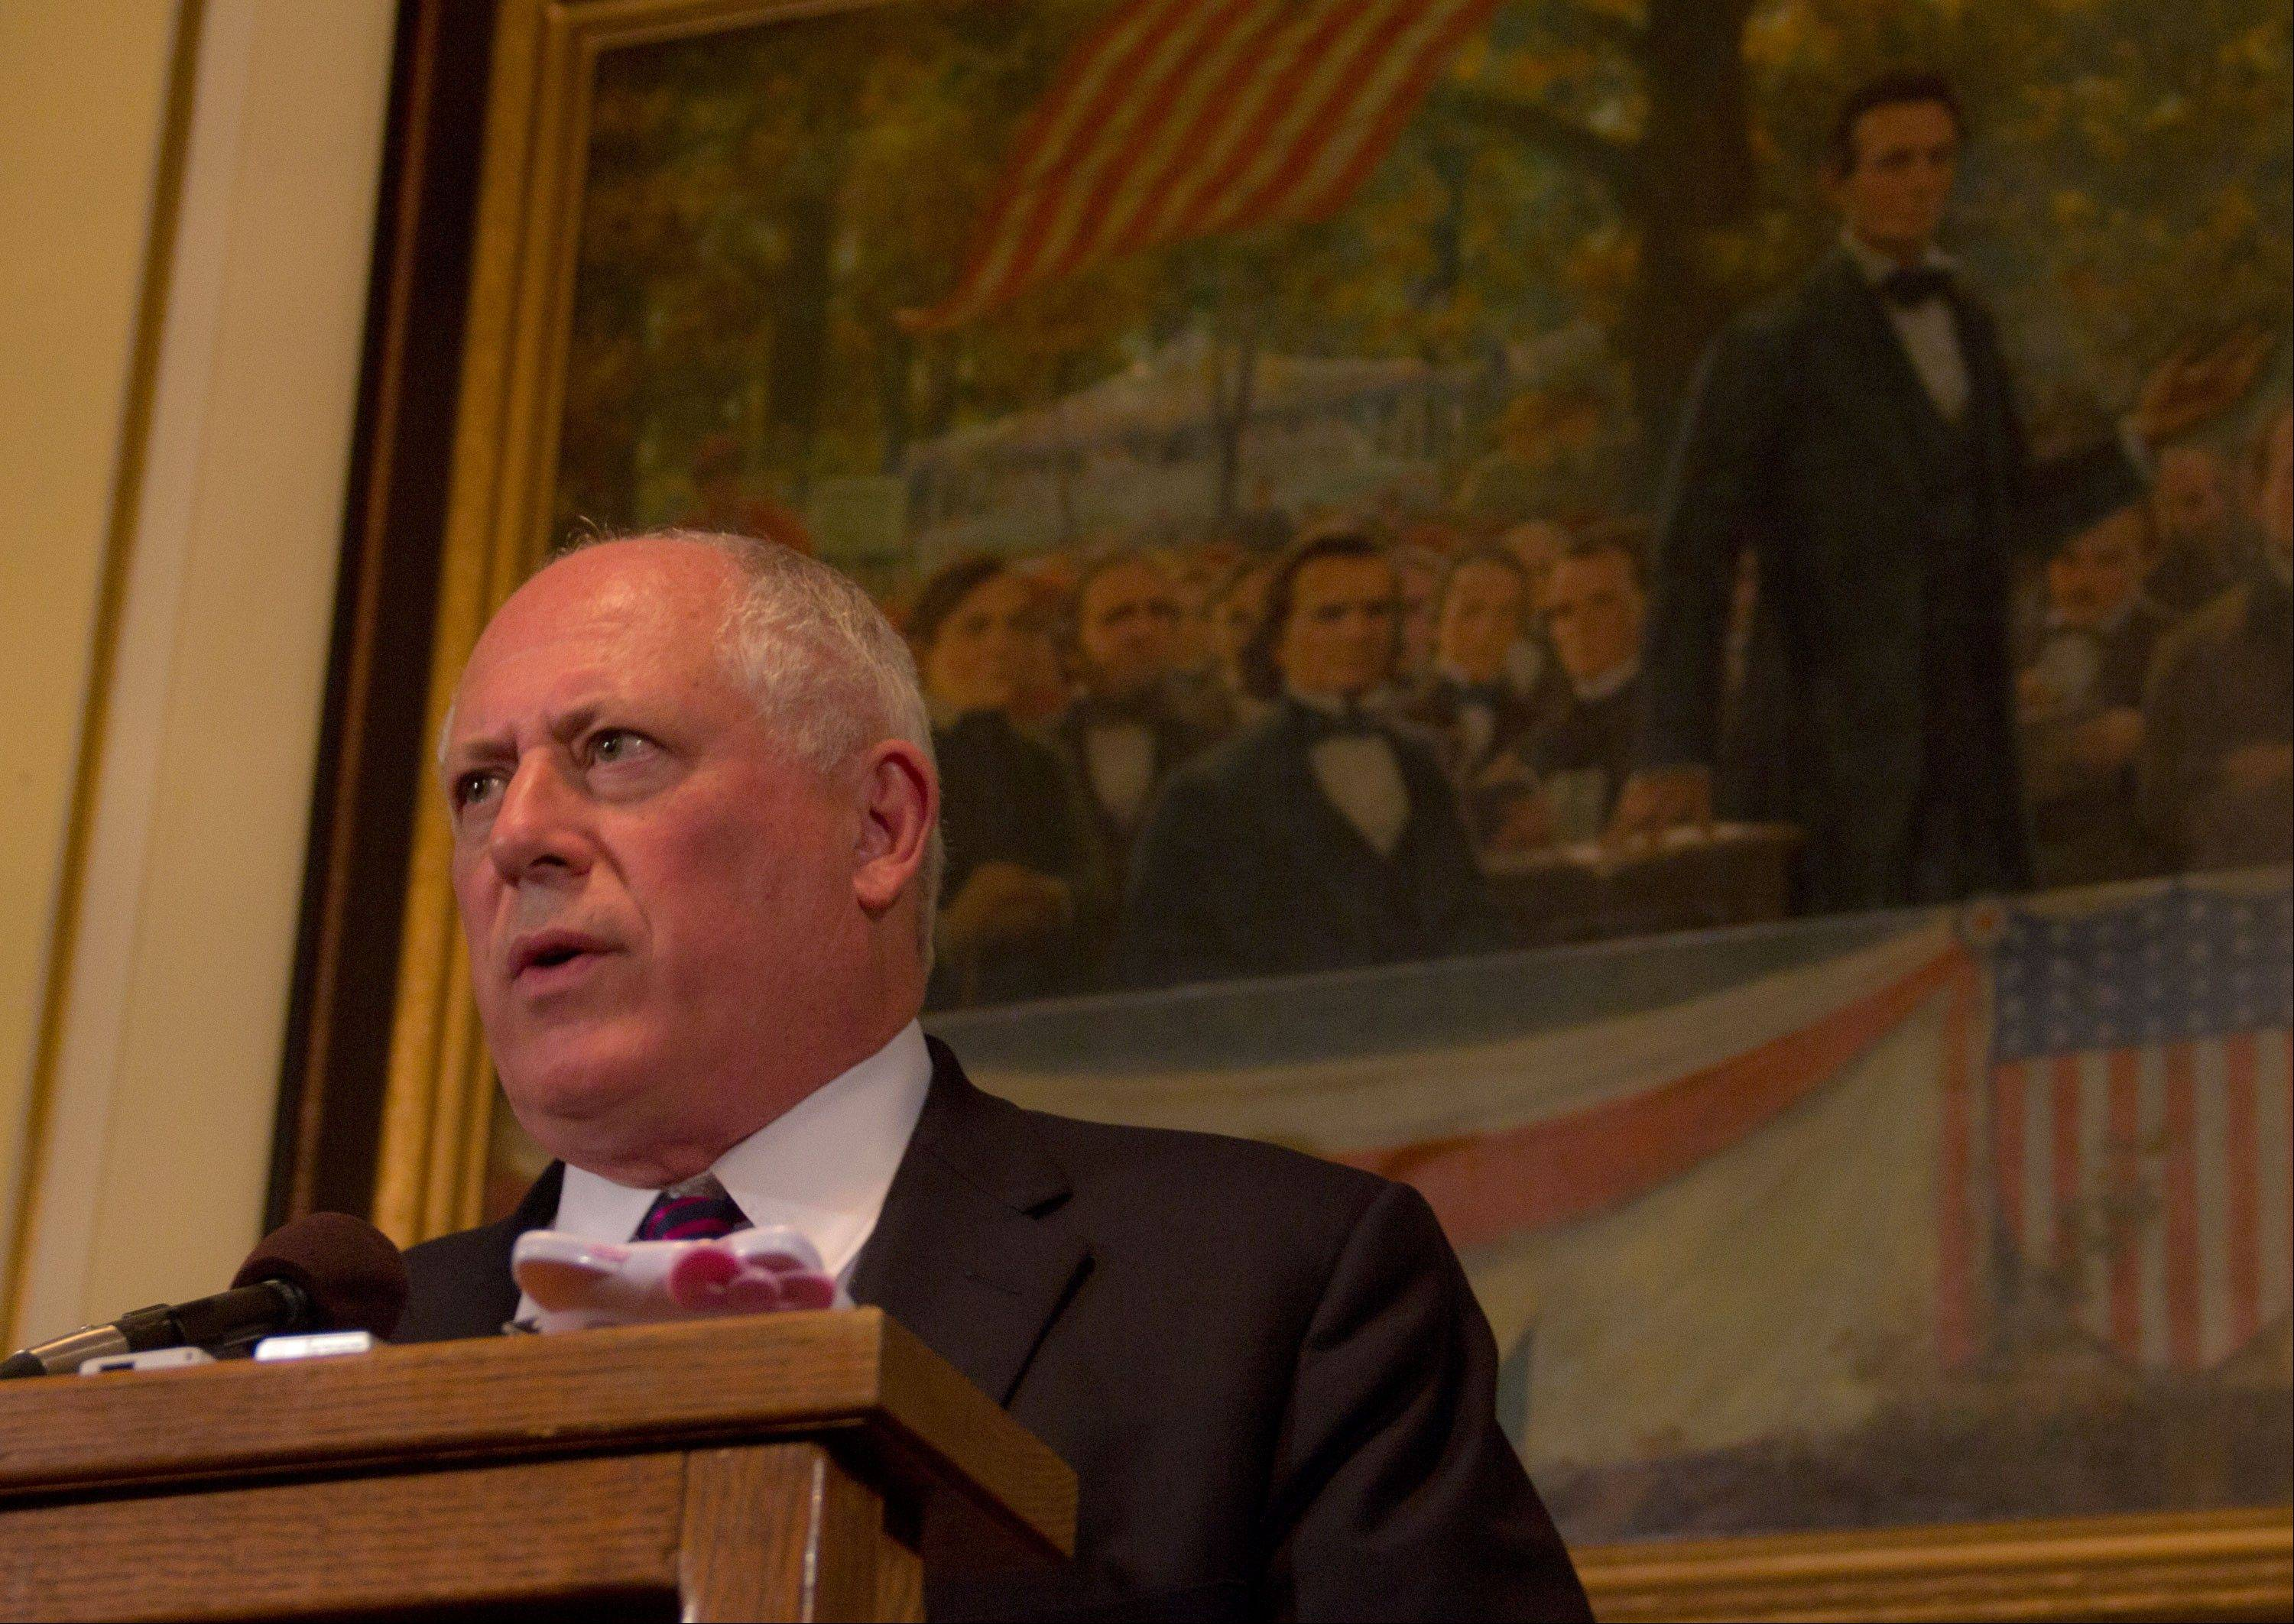 Gov. Pat Quinn's veto of a gambling bill stymied Arlington Park again in its attempt to gain approval for slot machines, as well as Lake County's attempt to get a new casino.